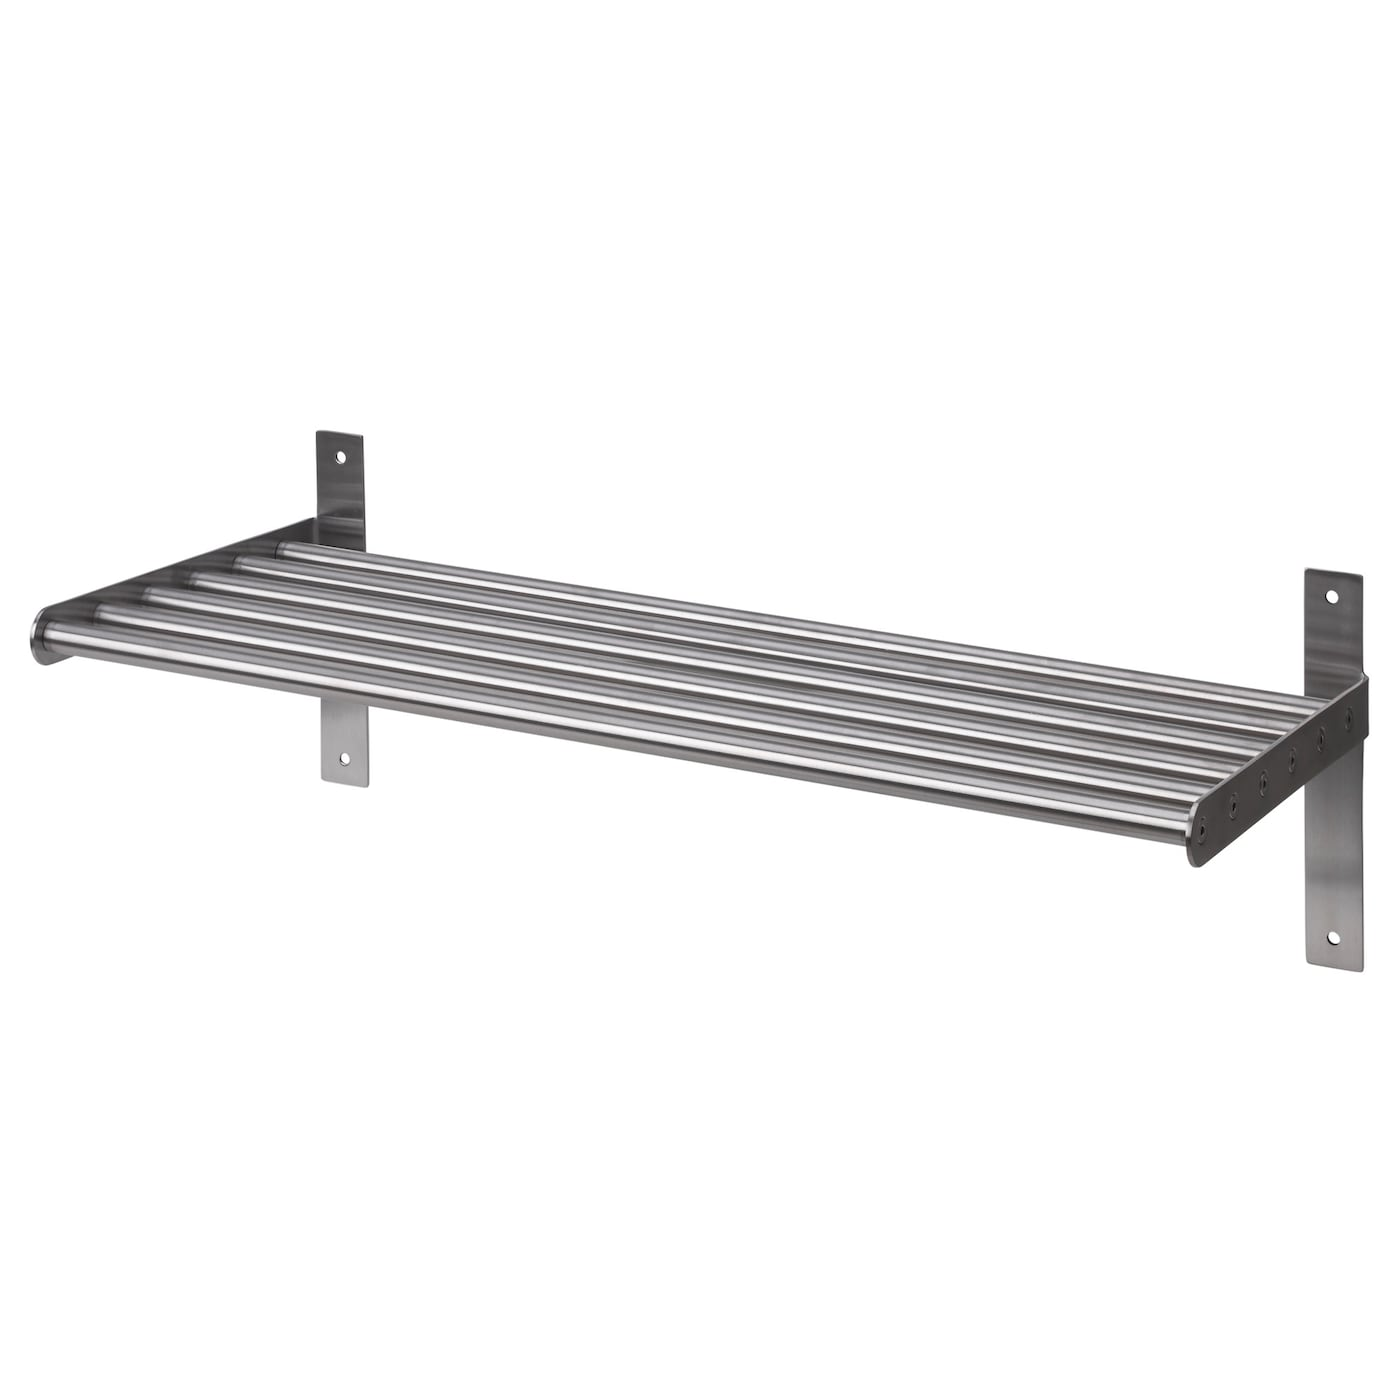 grundtal wall shelf stainless steel 60 cm ikea. Black Bedroom Furniture Sets. Home Design Ideas